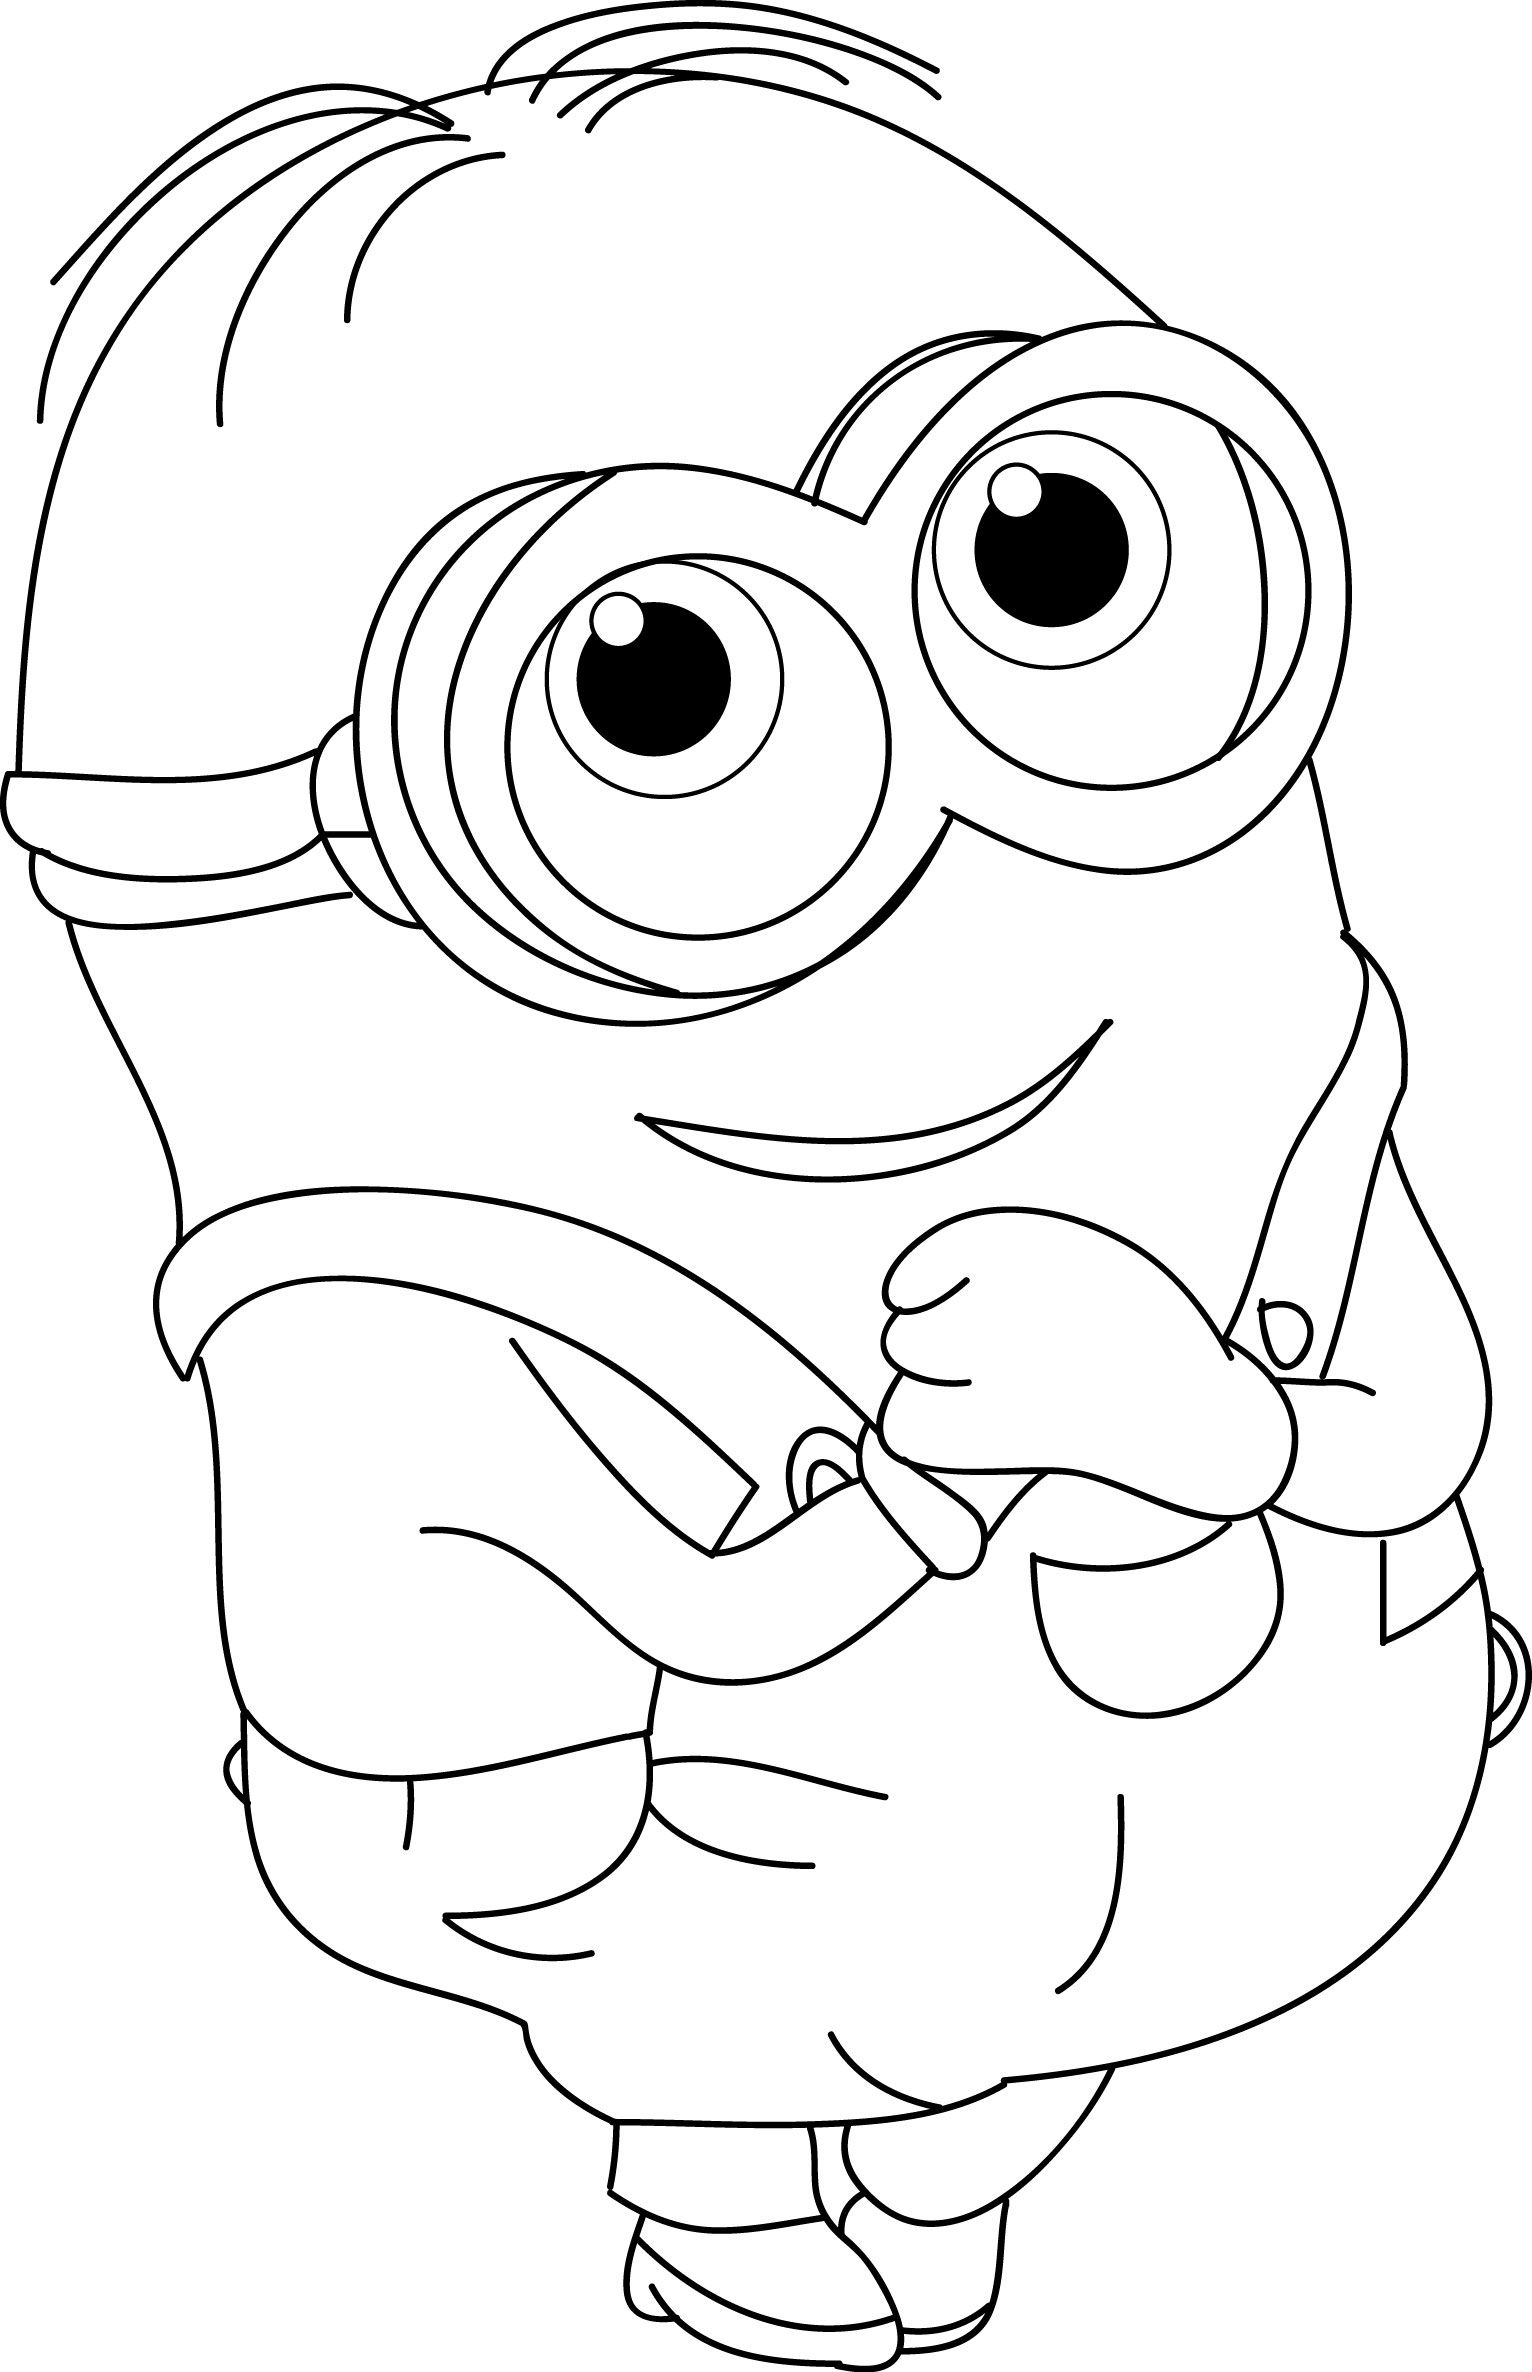 Printable Coloring Pictures